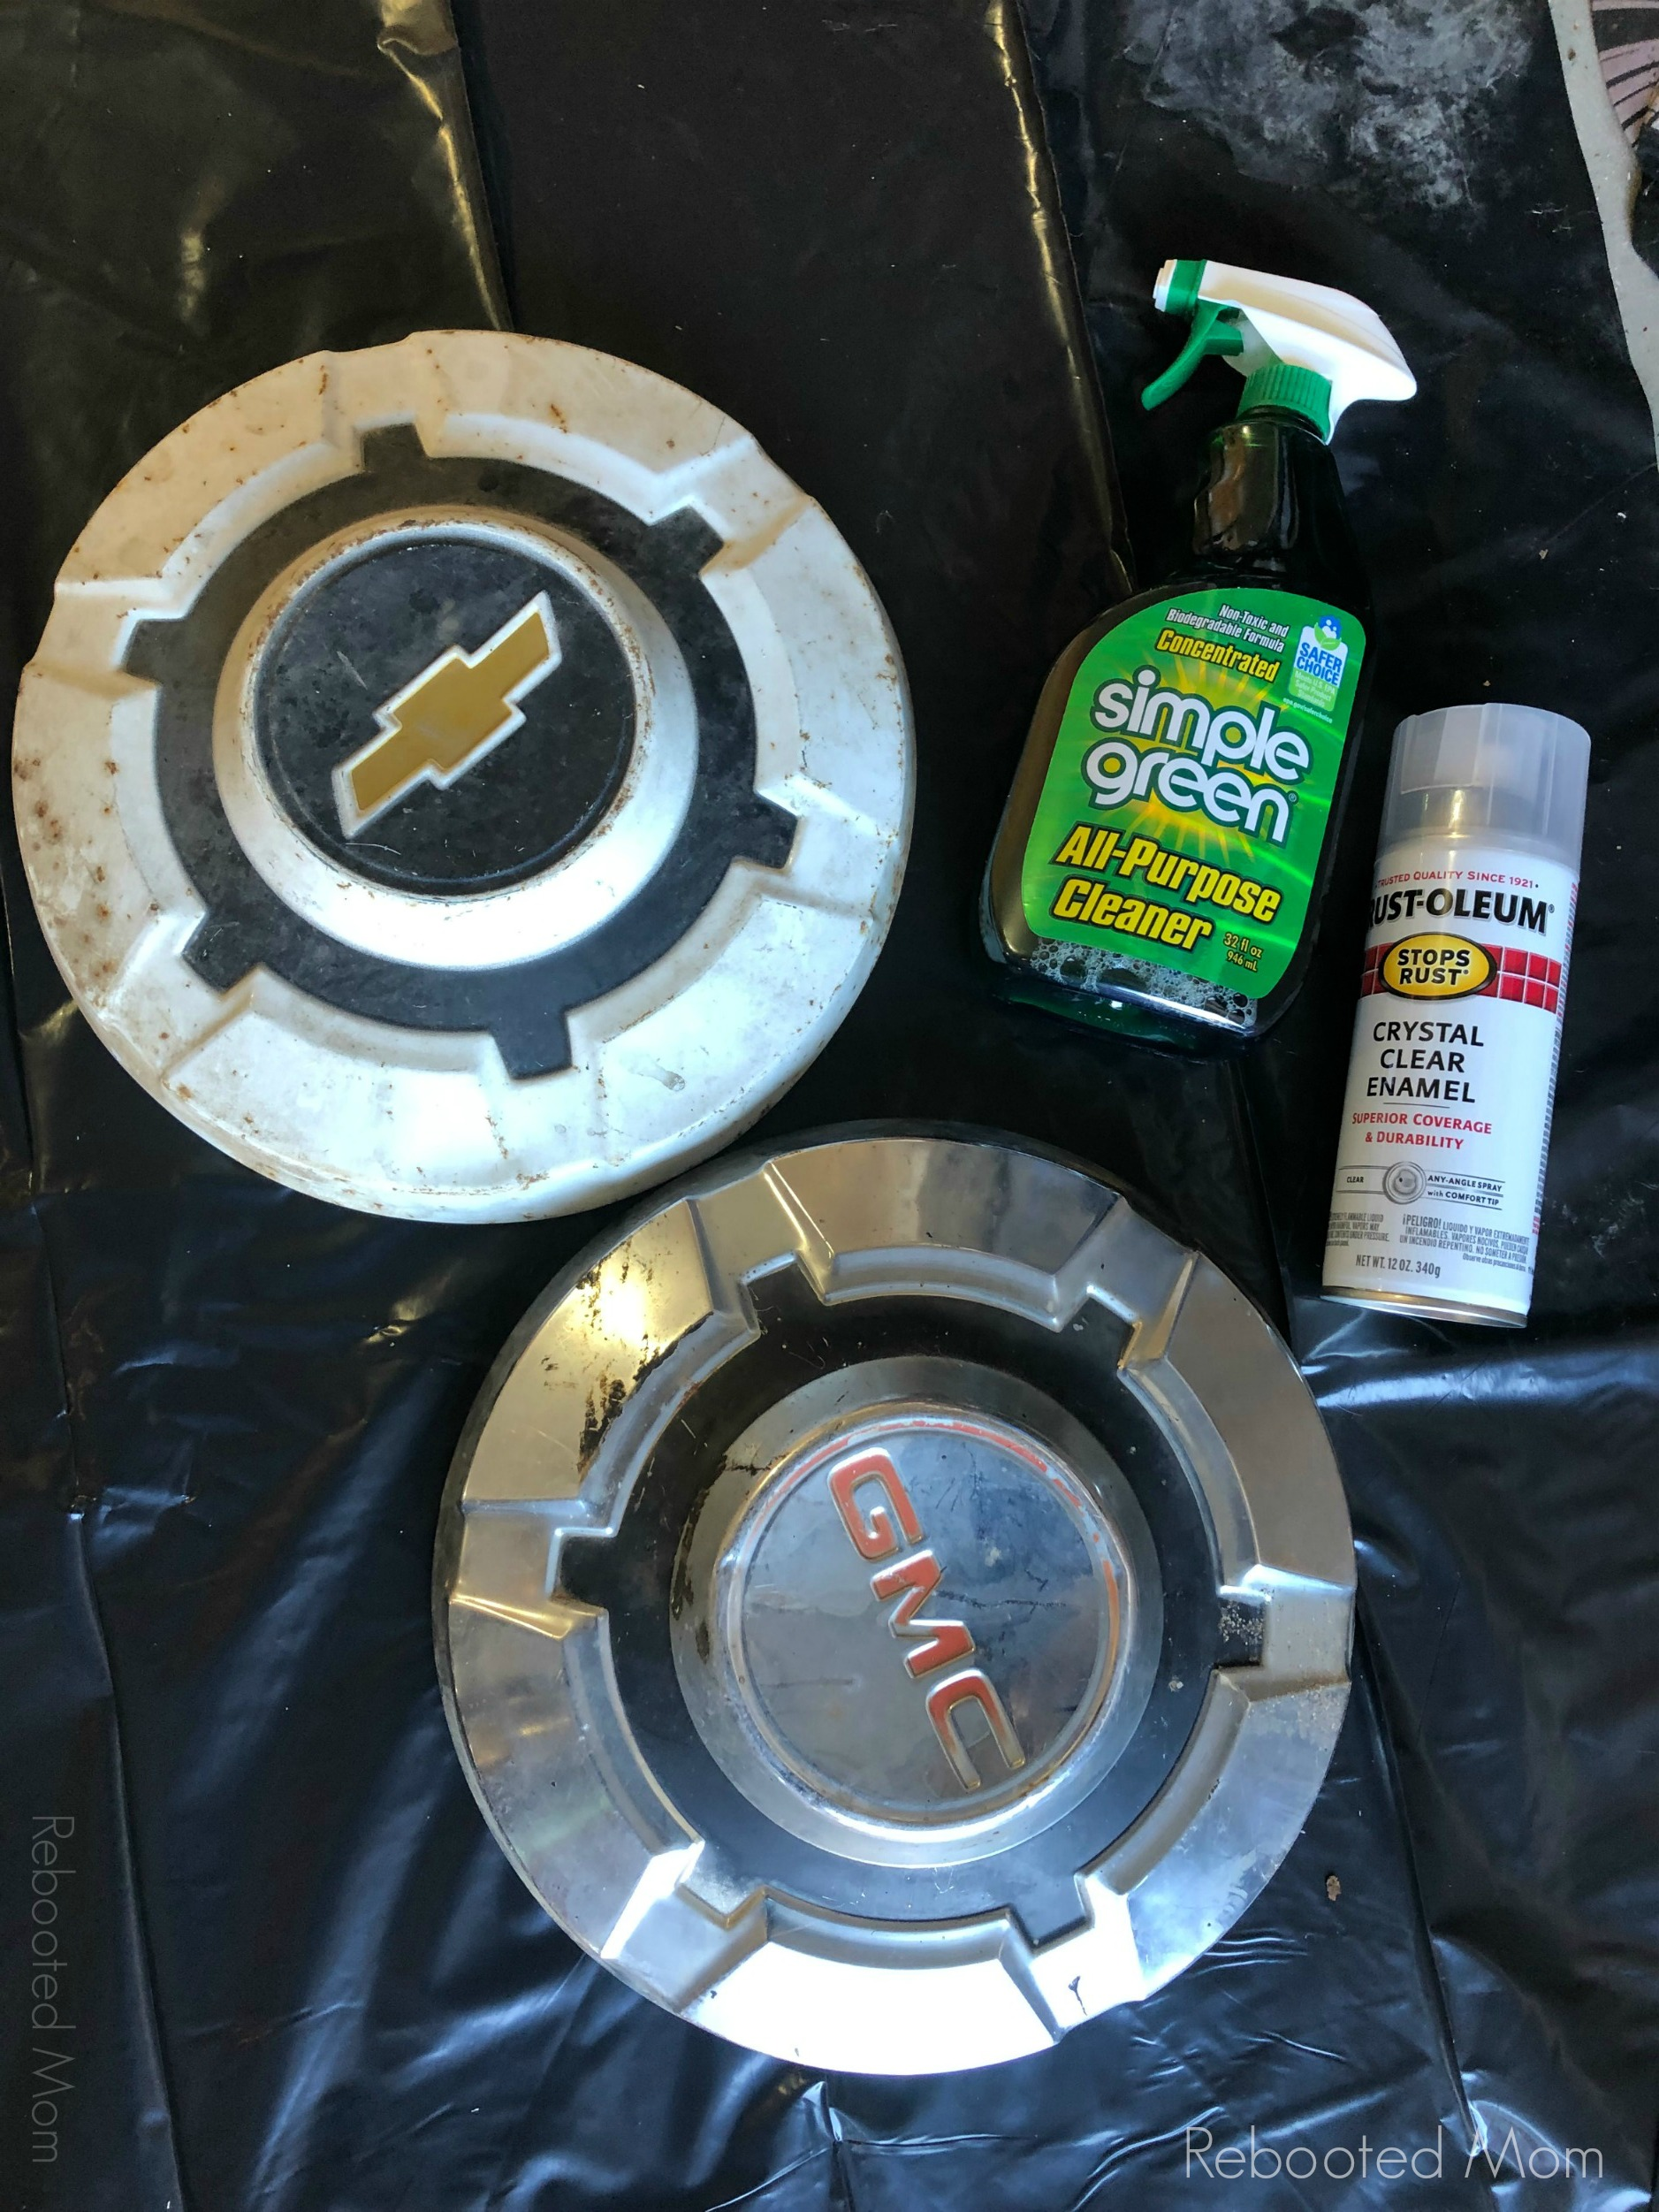 Upcycled Hubcap Clock